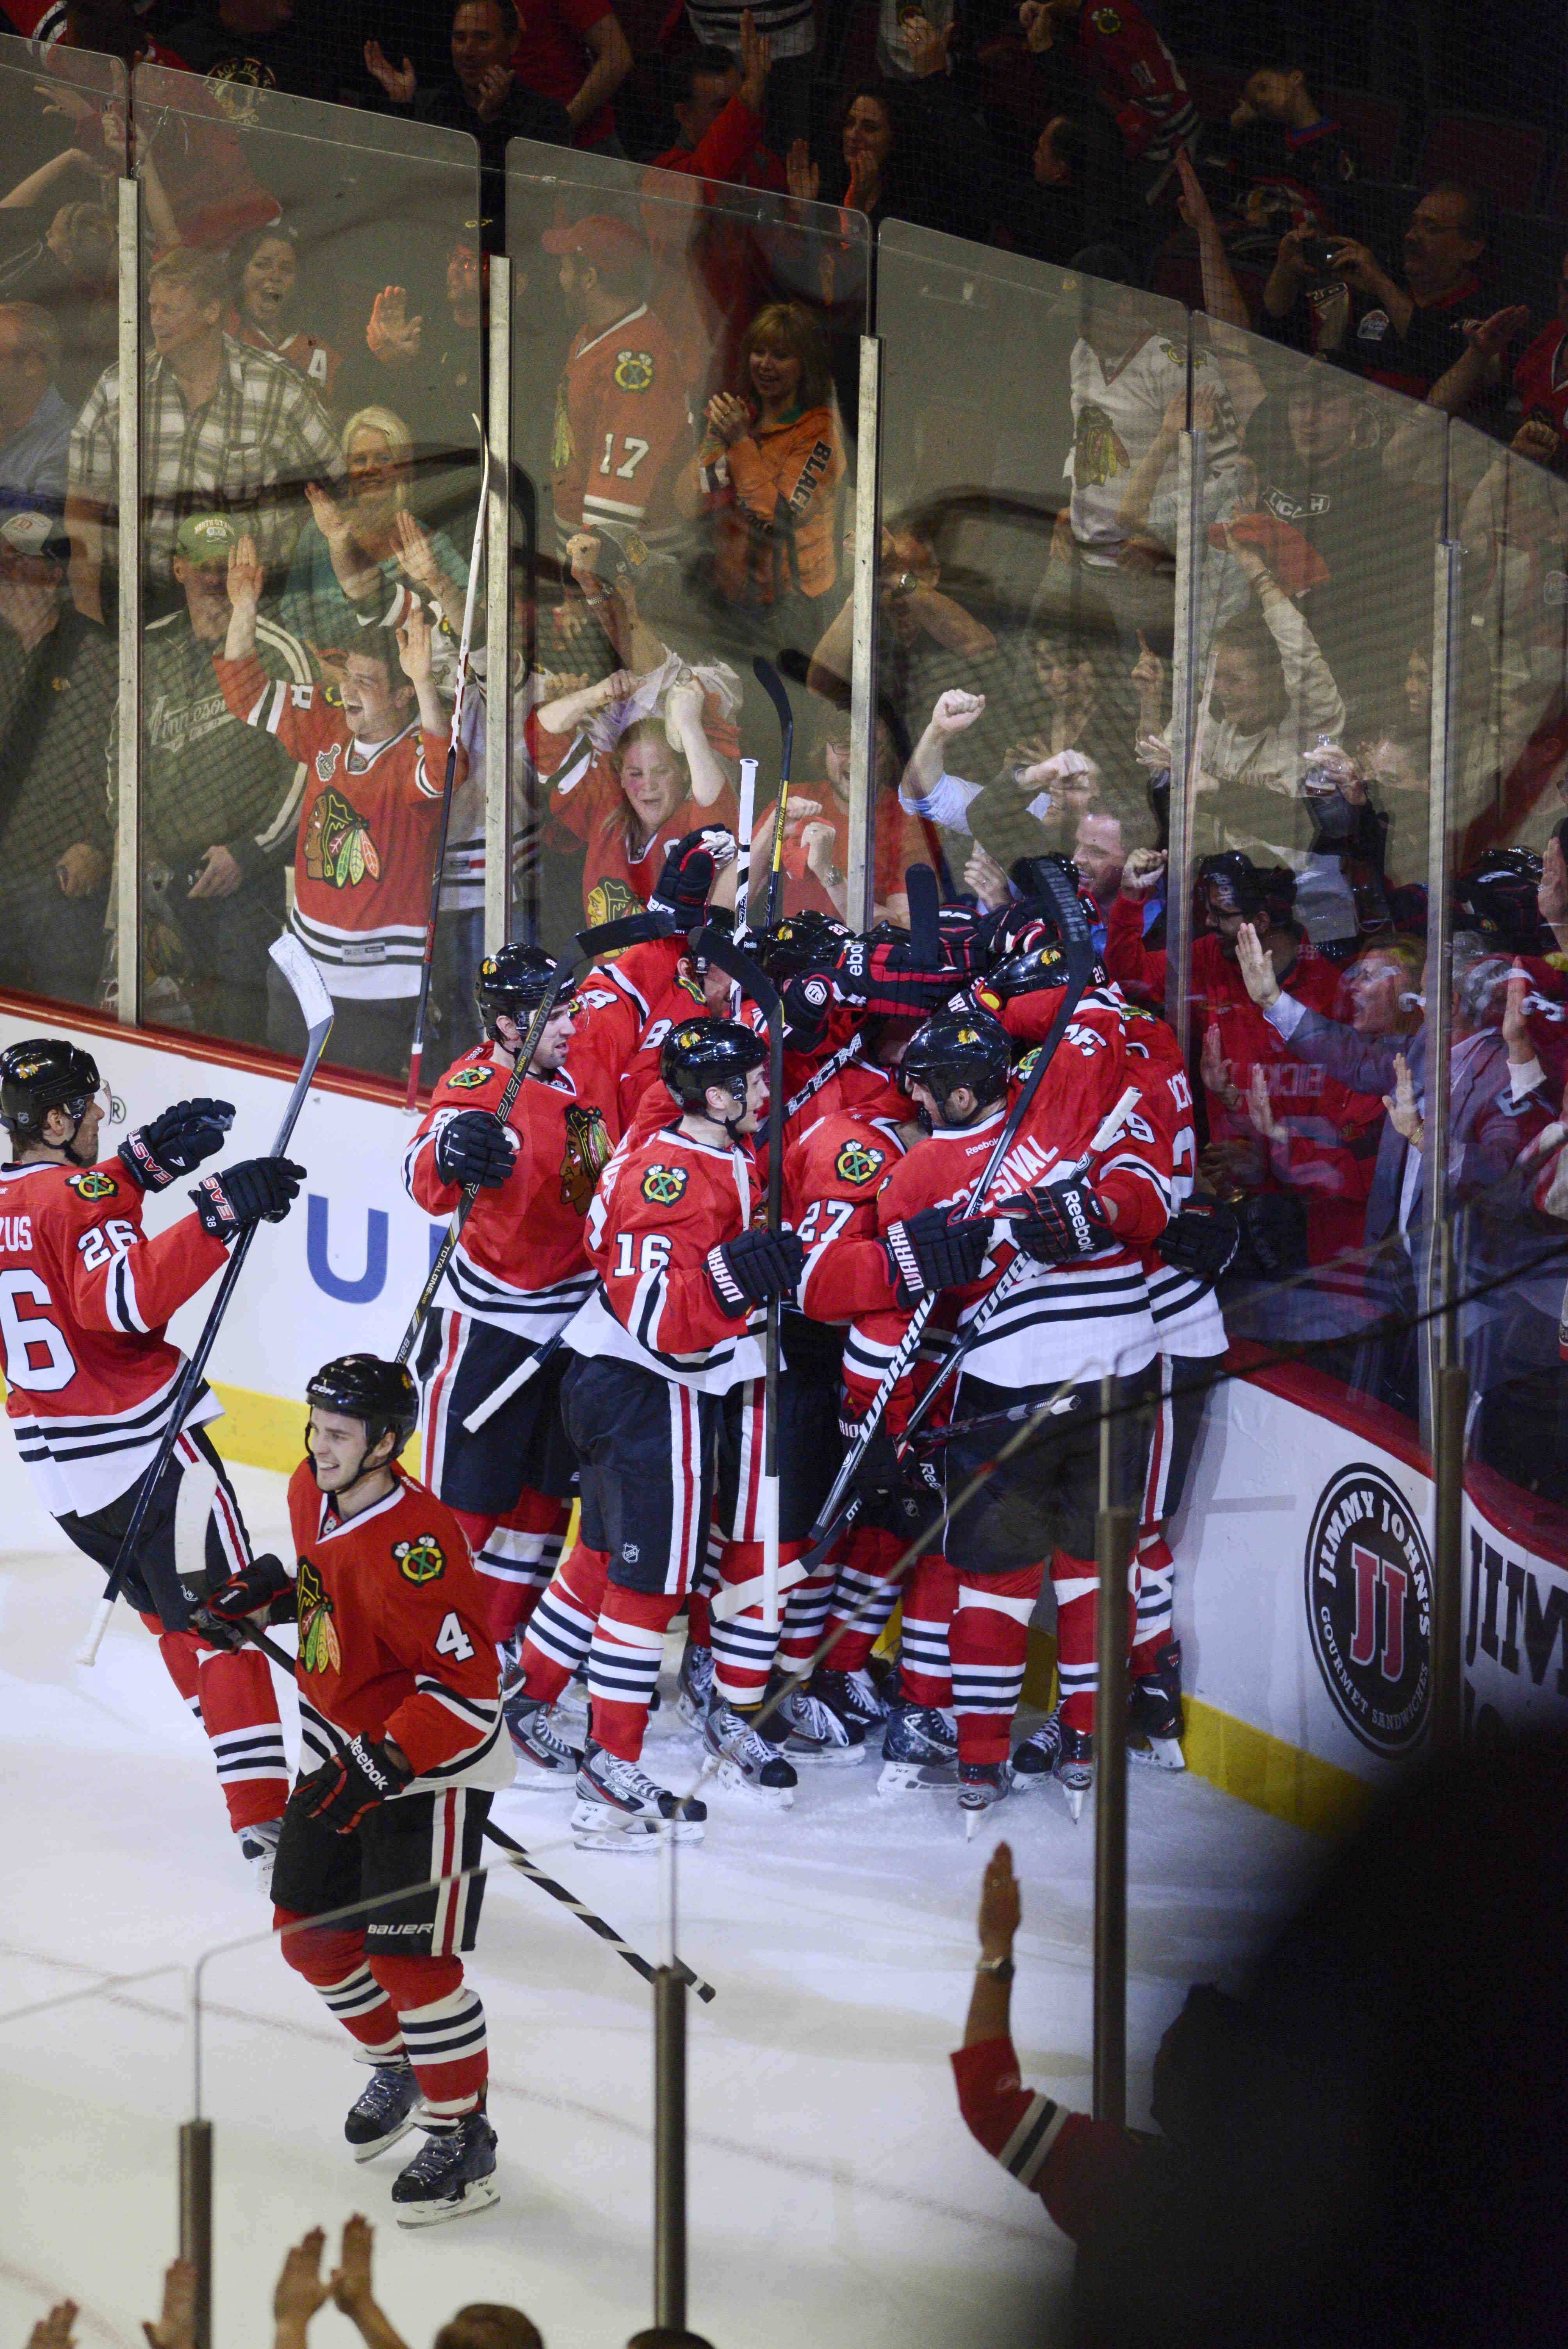 The Chicago Blackhawks celebrate the game winner by Bryan Bickell Tuesday in Game 1 of the Western Conference first-round playoff series at the United Center in Chicago.